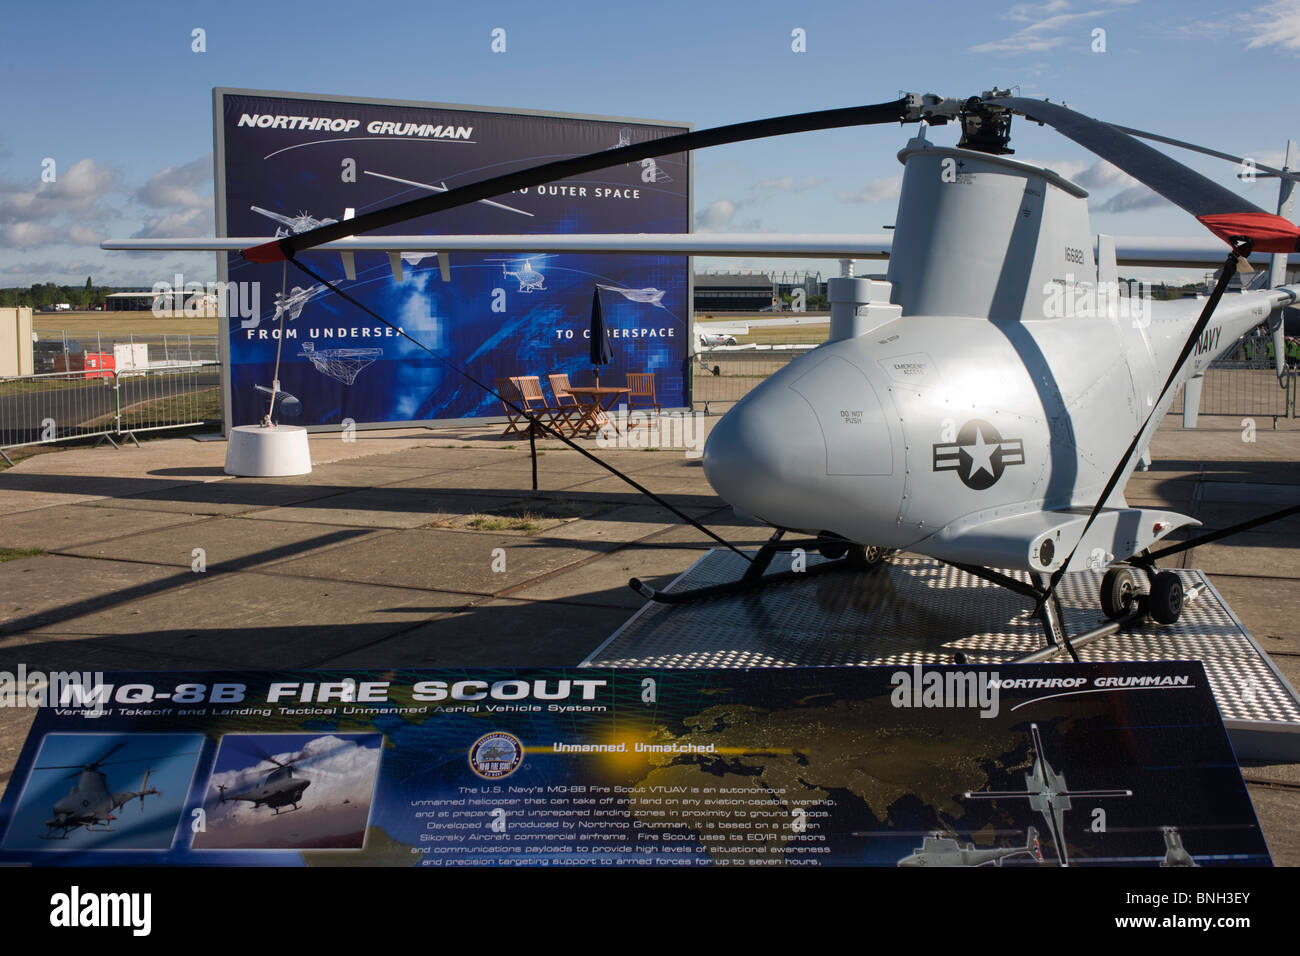 A Northrup Grumman US Air Force MQ-8B Fire Scout surveillance UAV helicopter exhibited at the Farnborough Airshow. - Stock Image